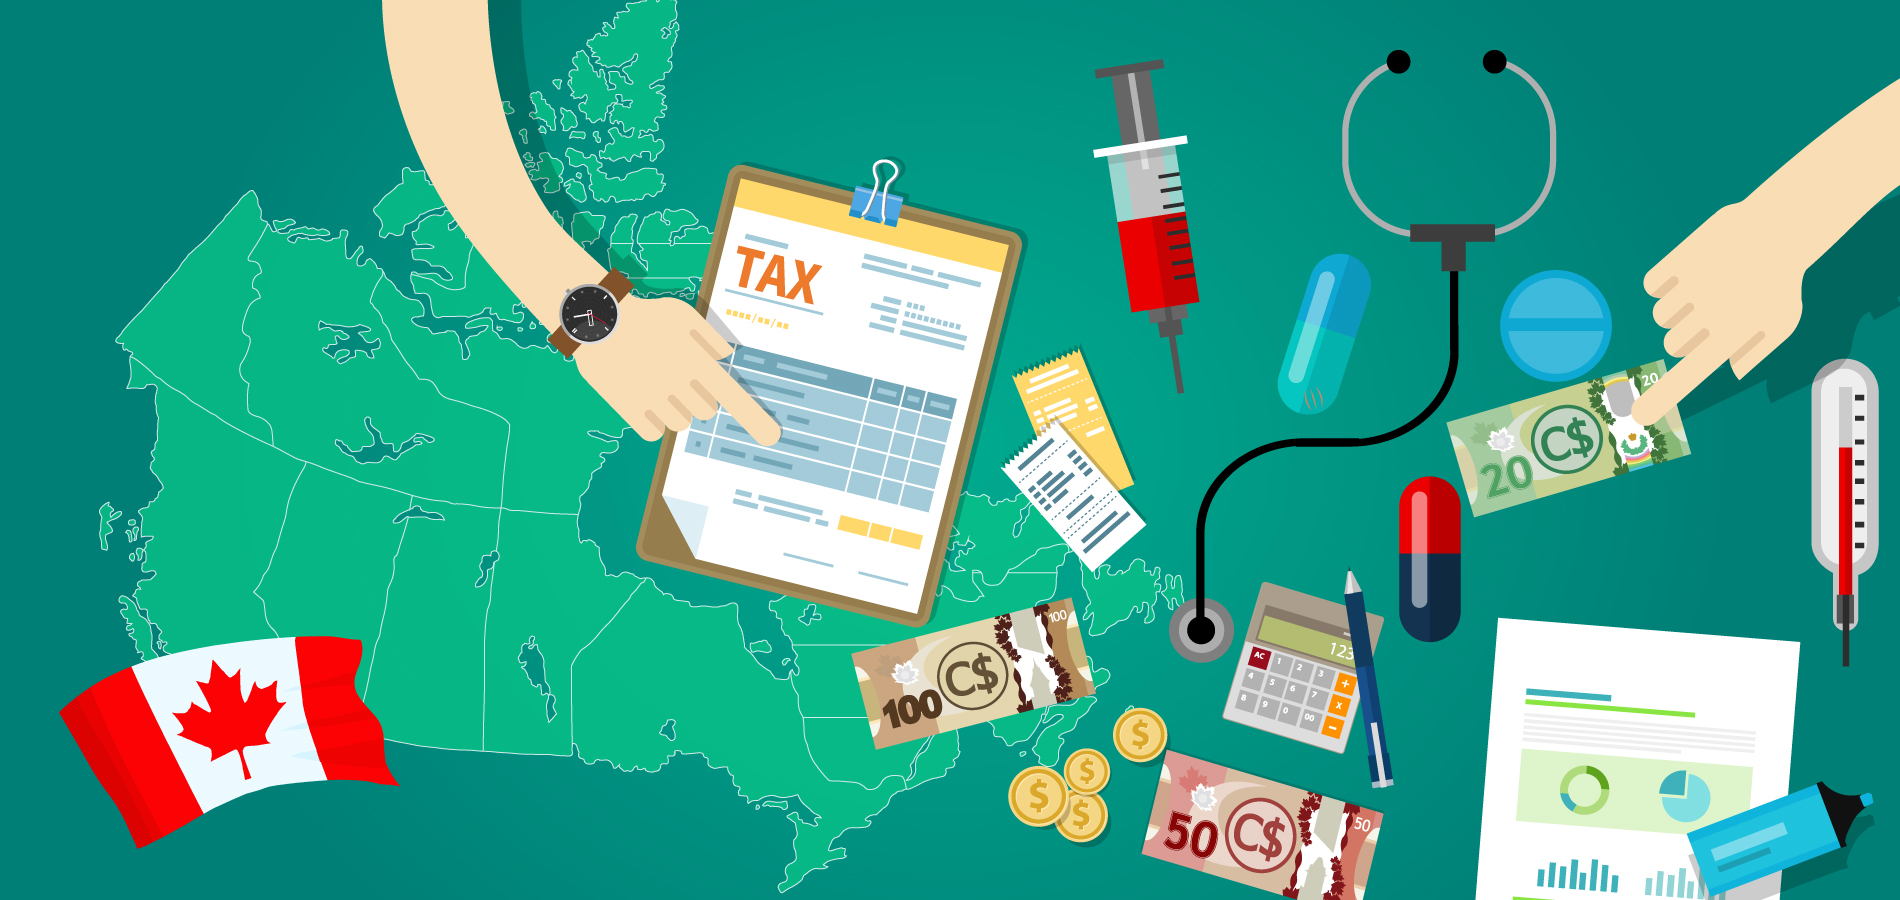 Are Health Insurance Benefits Taxable In Canada